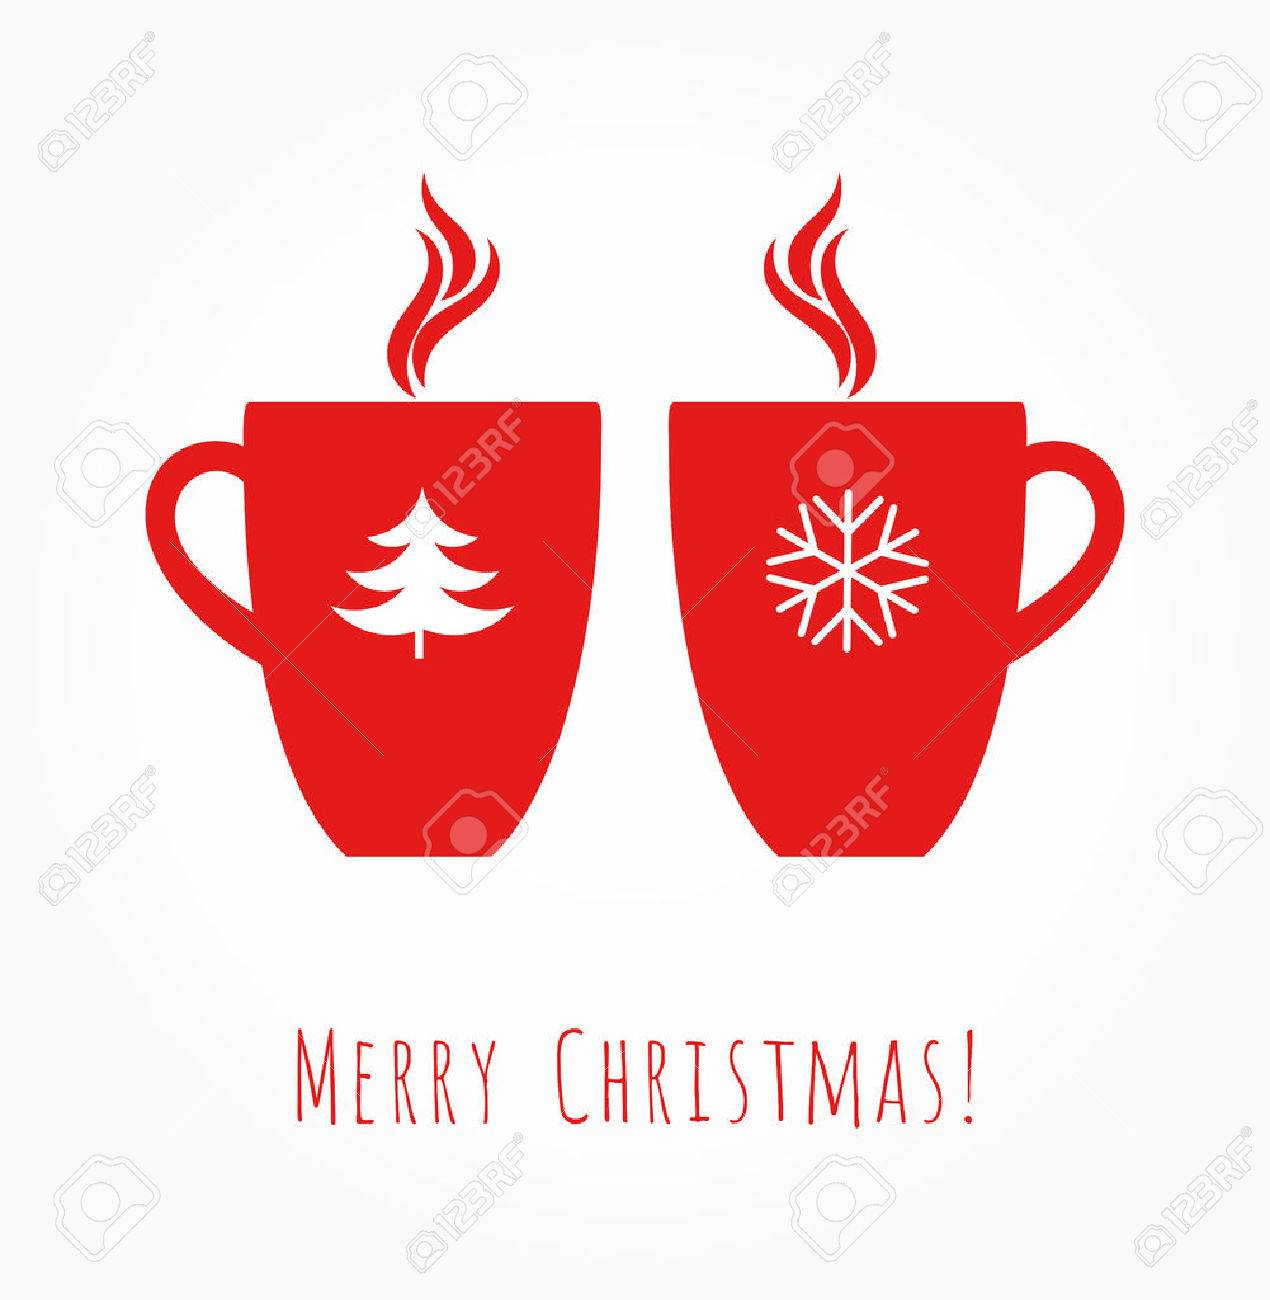 Red Christmas Coffee Mugs Vector Illustration Royalty Free Cliparts Vectors And Stock Illustration Image 68889825